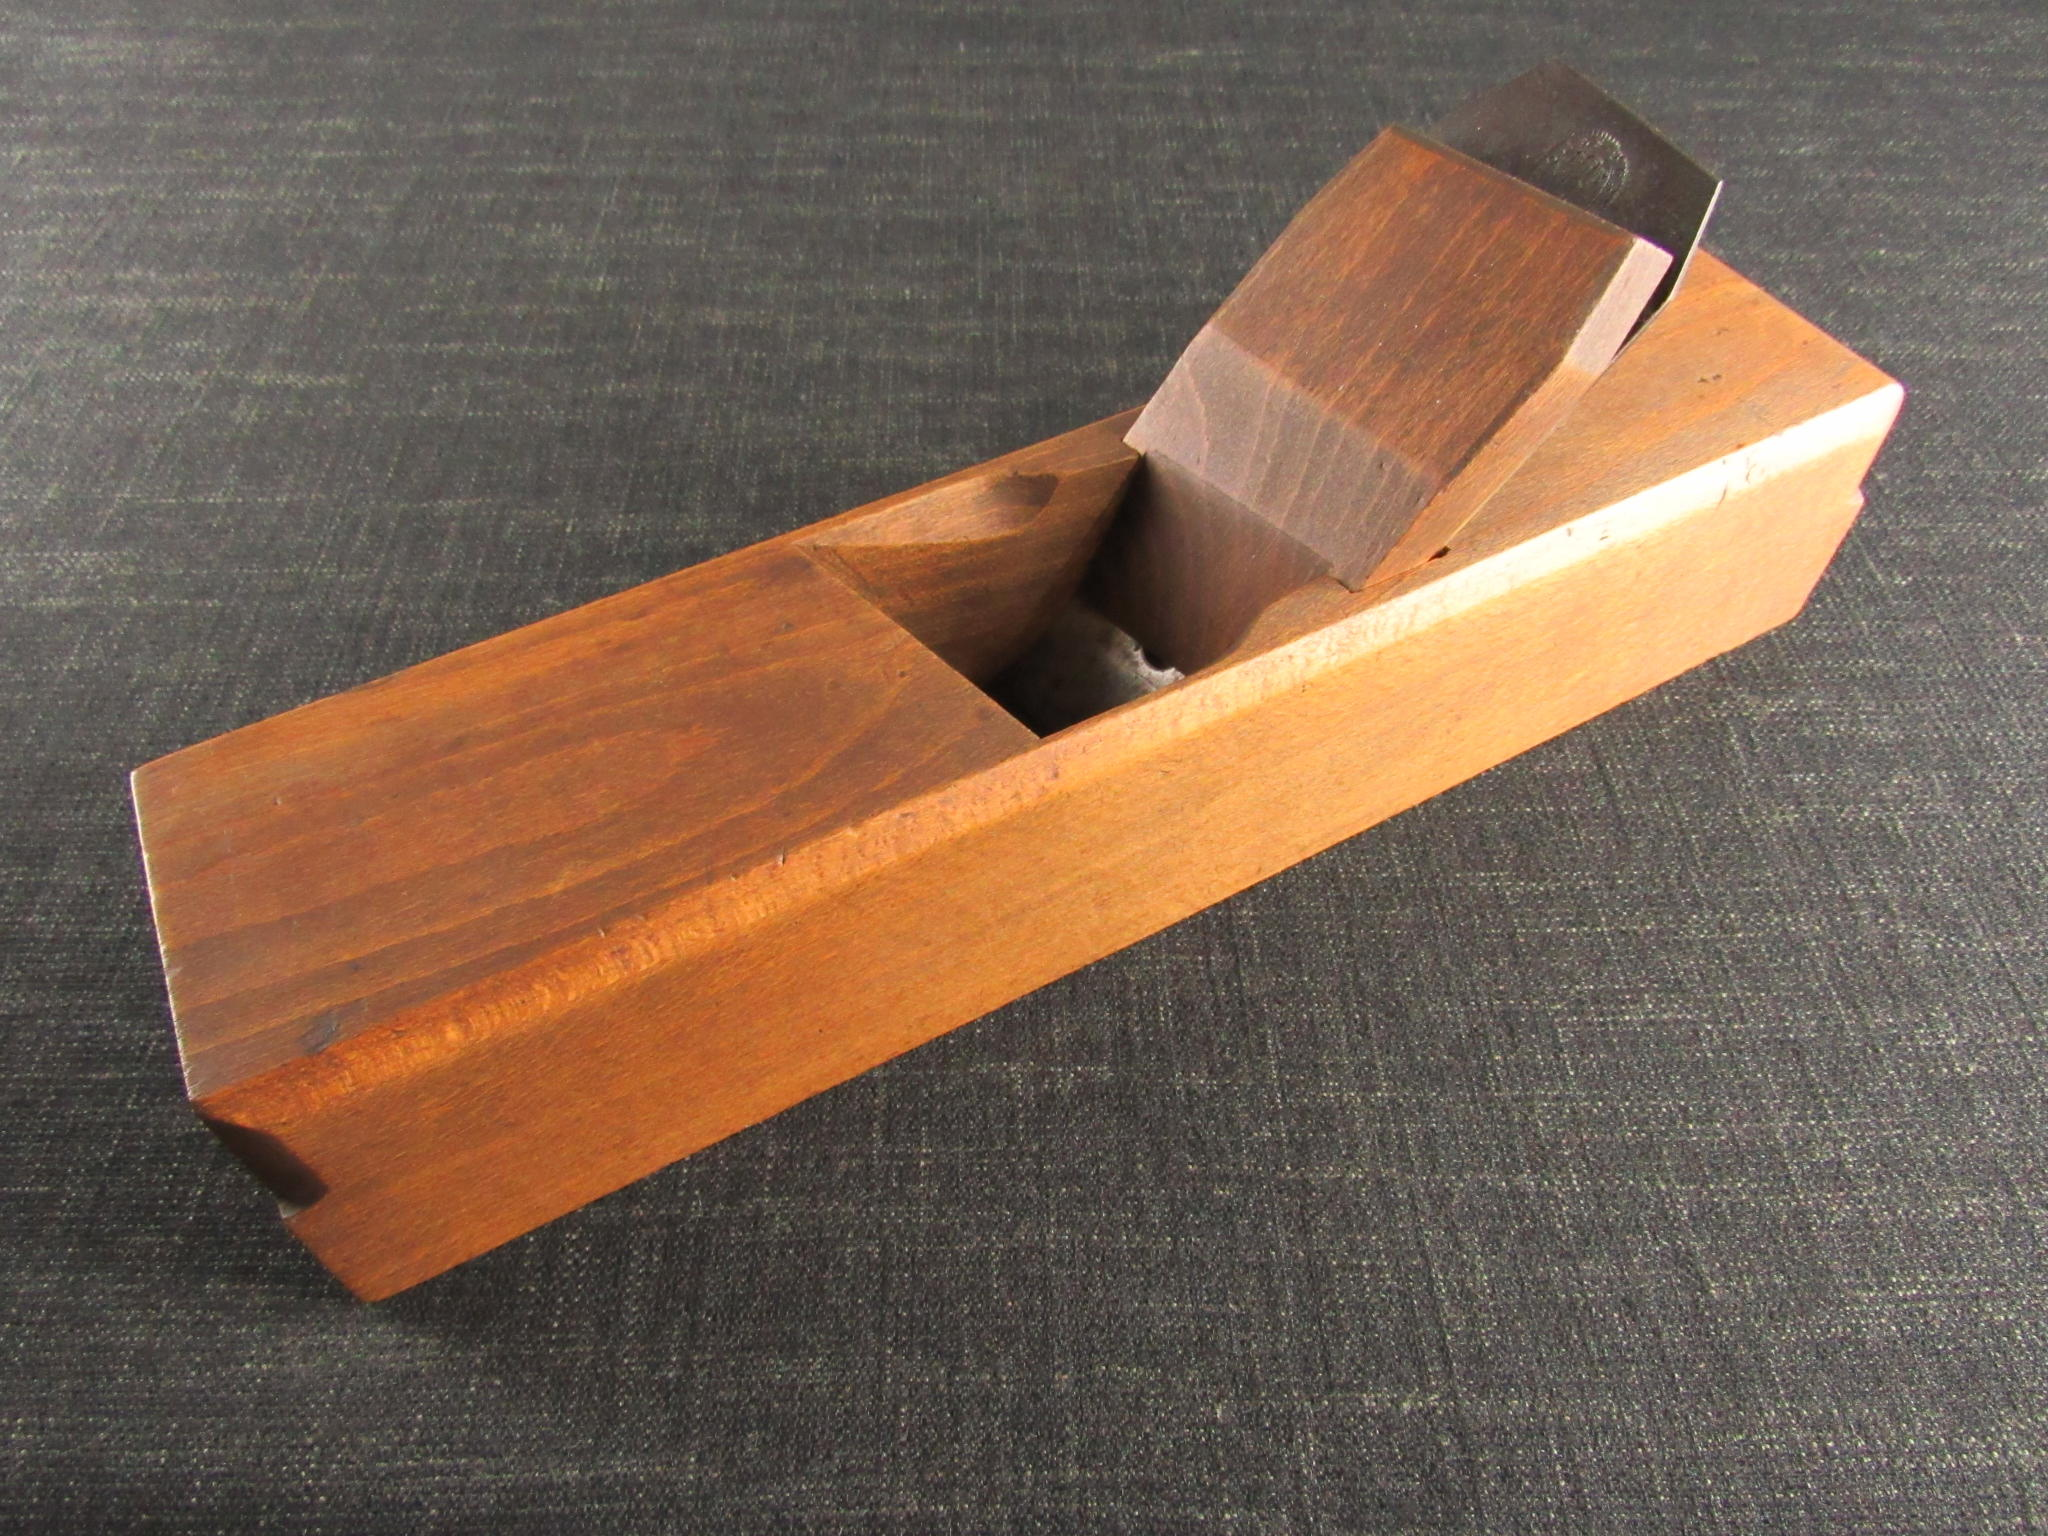 Wooden Mitre Block Plane or Shooting Plane - J BAXTER Wadsley Bridge